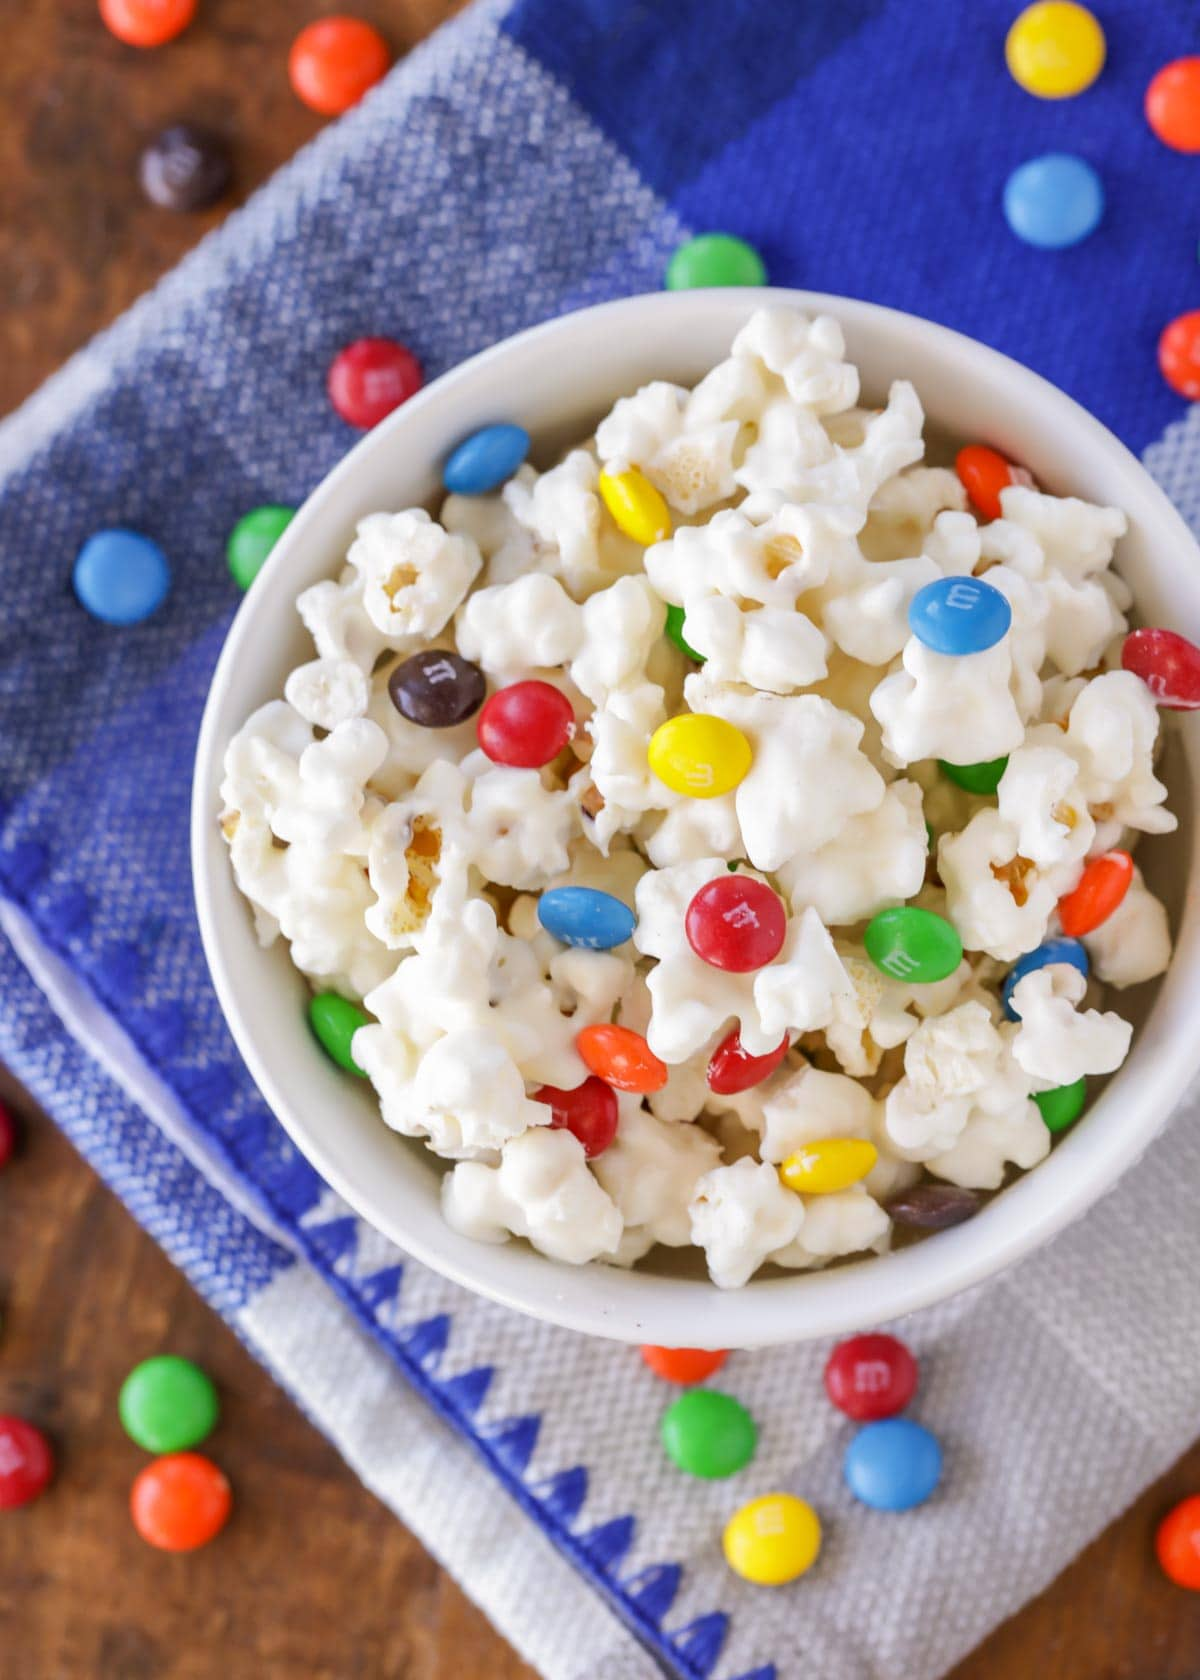 White chocolate popcorn recipe with M&Ms